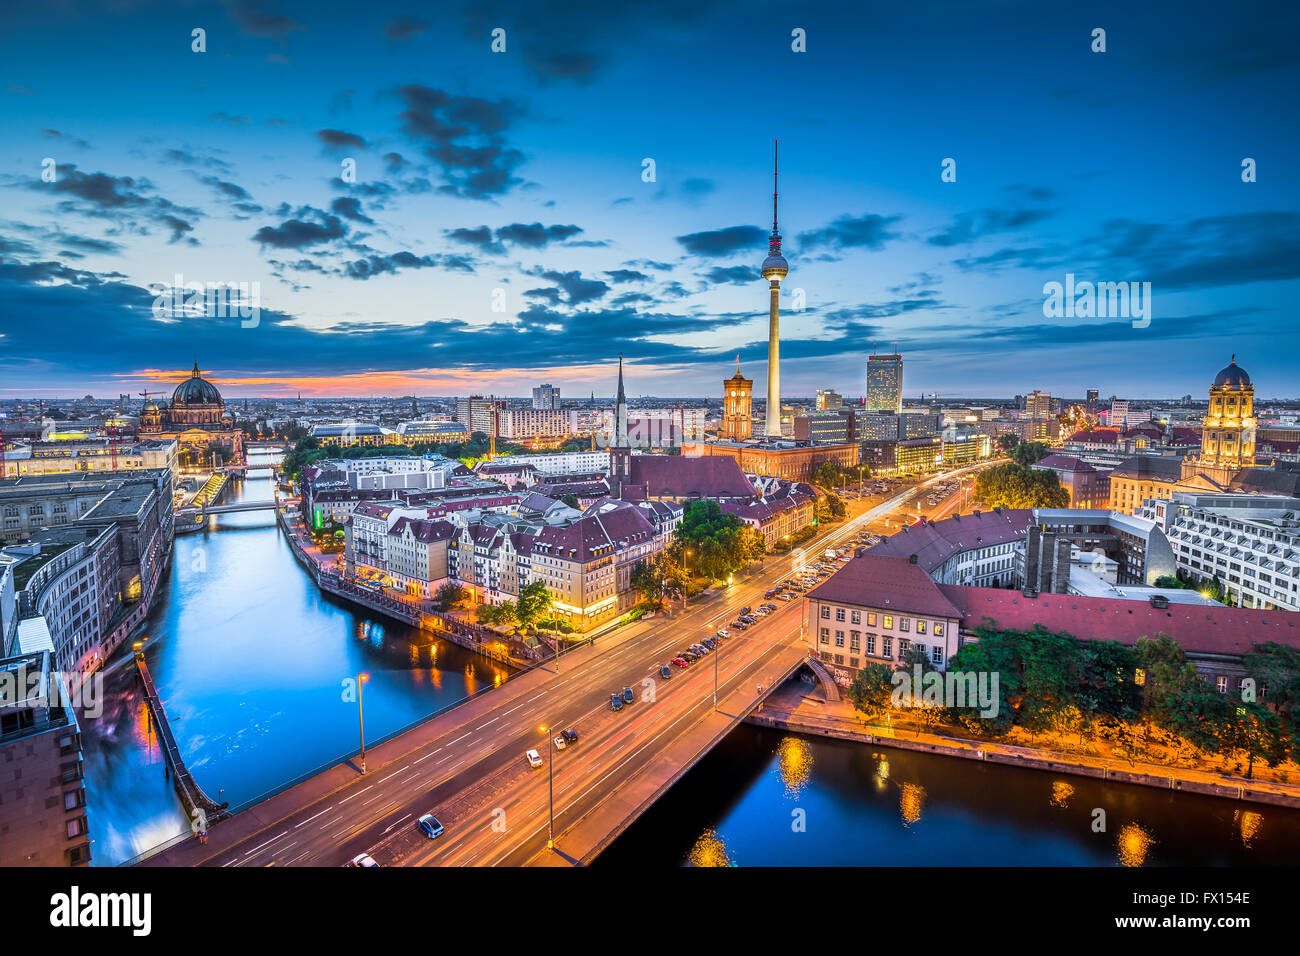 Aerial view of Berlin skyline with dramatic clouds in twilight during blue hour at dusk, Germany - Stock Image